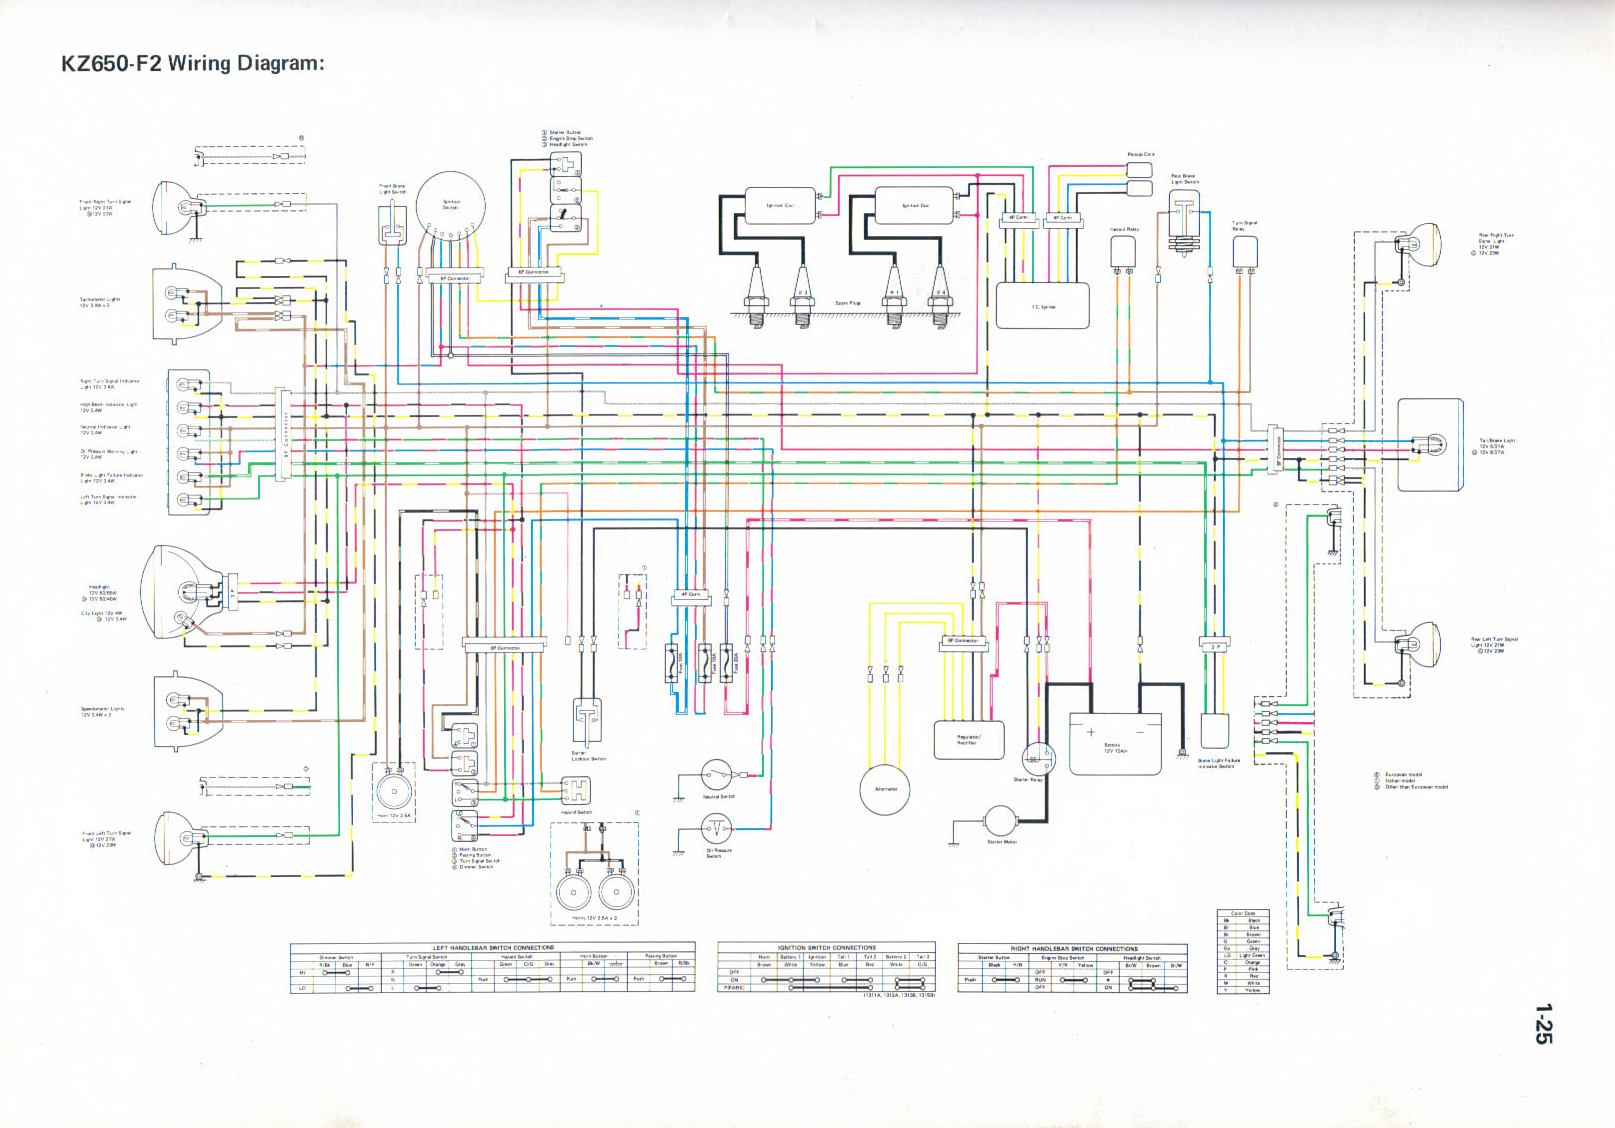 hight resolution of info wiring diagrams kz650 f2 1980s kawasaki kdx 200